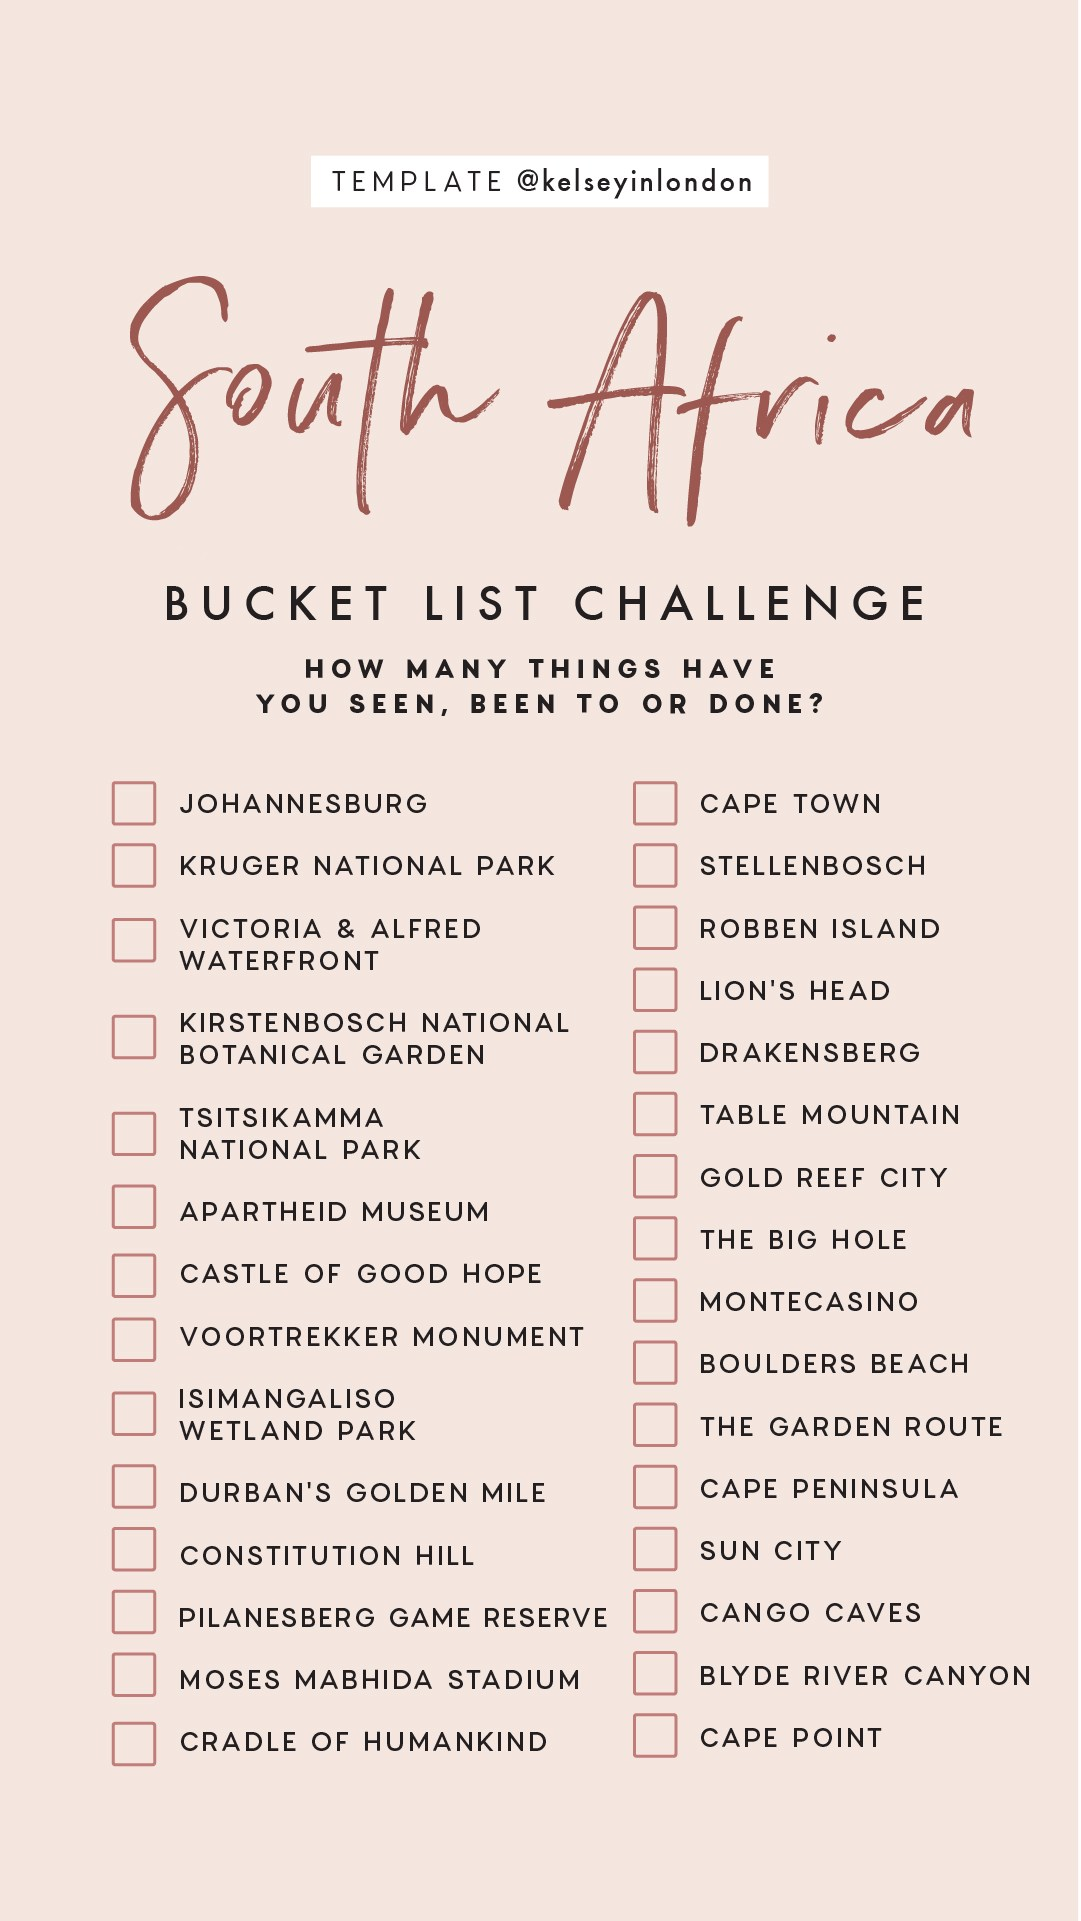 Top things to do in South Africa Bucket list Instagram Story Template kelseyinlondon Kelsey Heinrichs What to do in South Africa Where to go in South Africa top places in South Africa